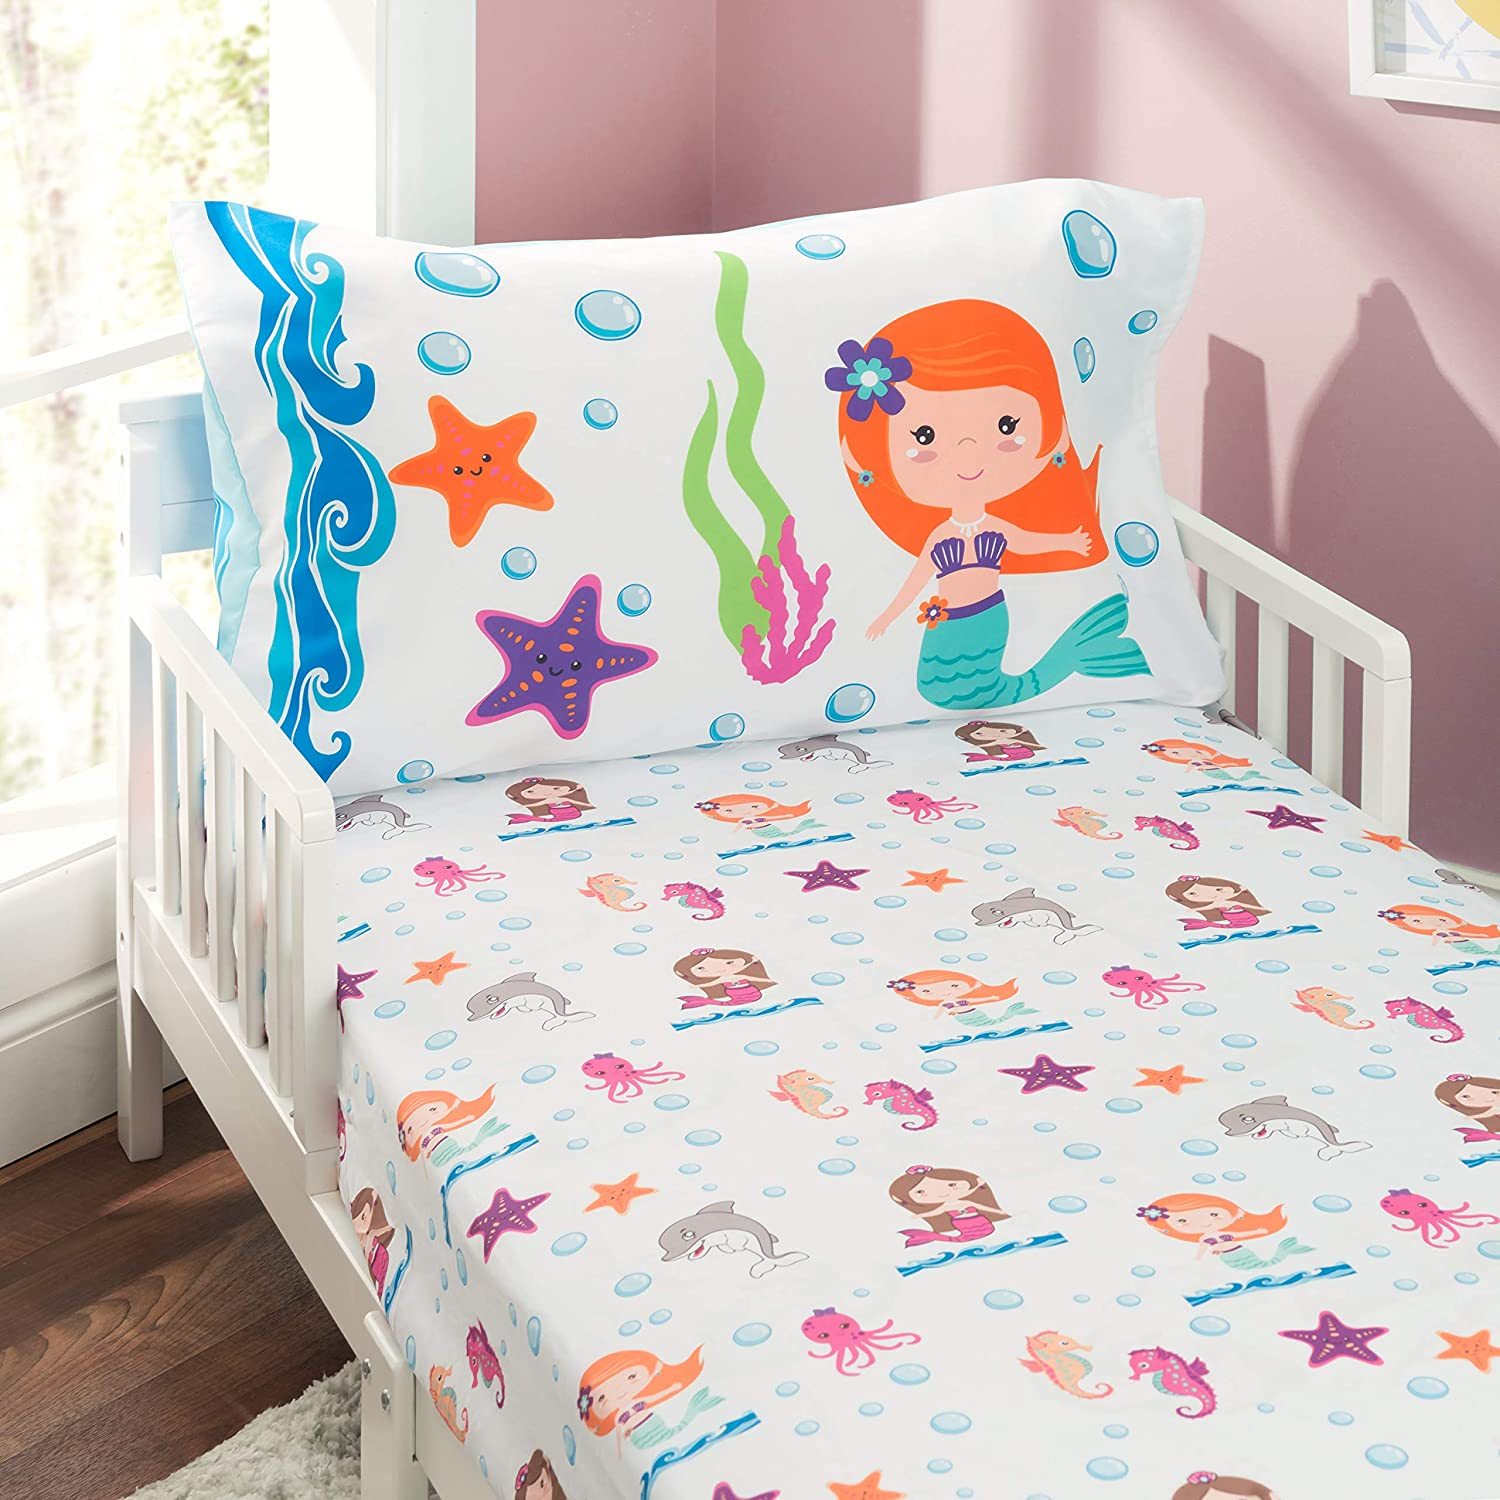 Undersea Mermaids Adventure Fitted Sheet and Reversible Pillowcase EVERYDAY KIDS 4 Piece Toddler Bedding Set Includes Comforter Flat Sheet